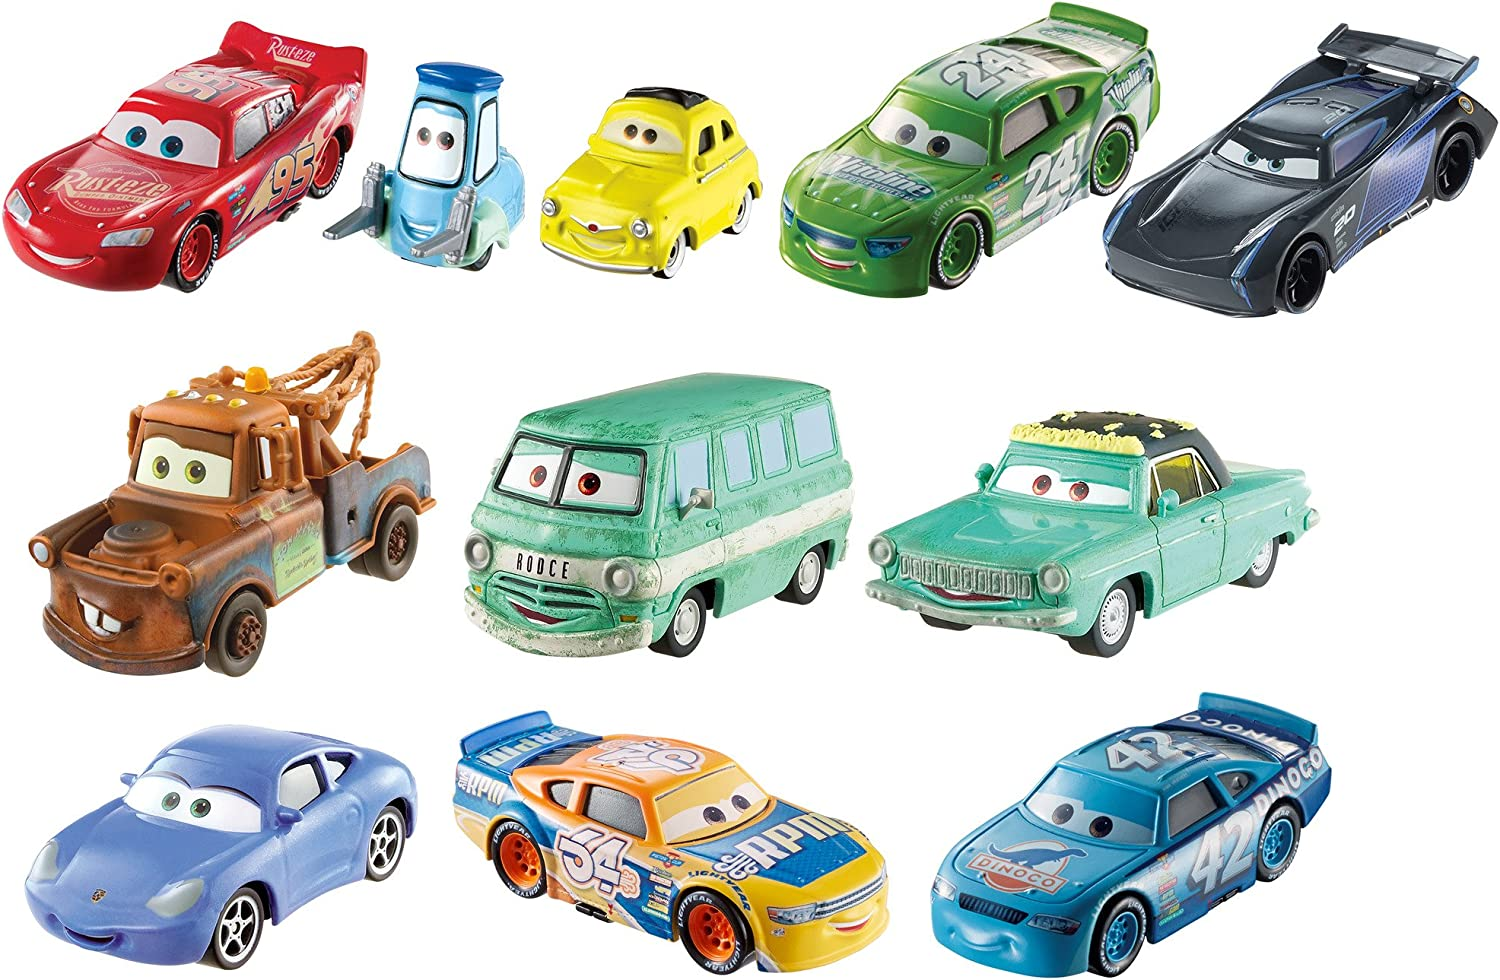 Disney Pixar Cars 3 Die-cast Dot-com 10-Pack